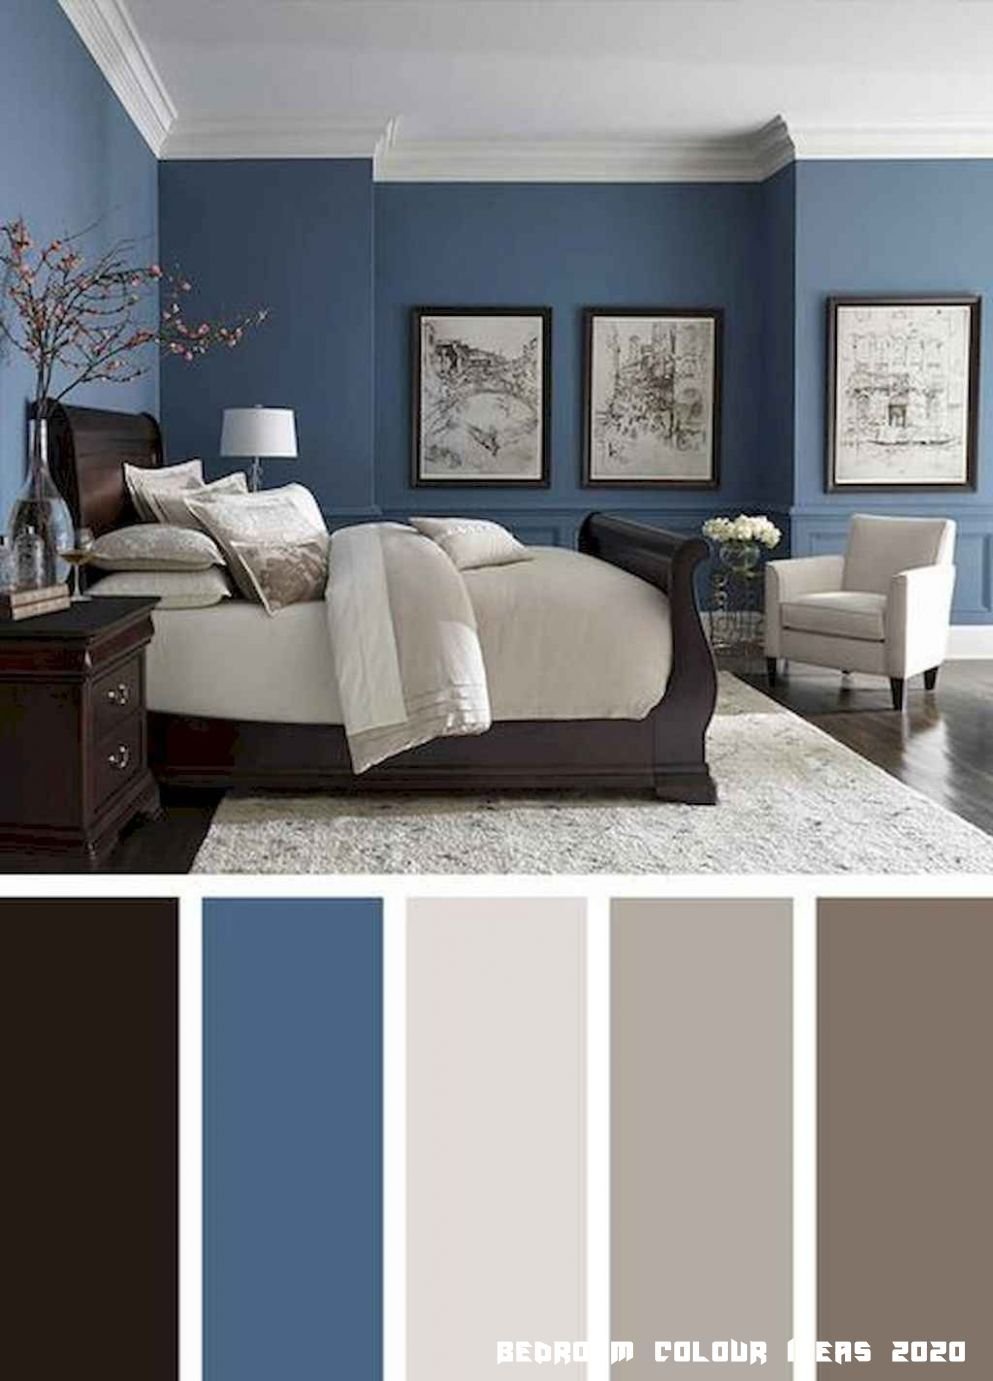 12 Bedroom Colour Ideas 2020 In 2020 Beautiful Bedroom Colors Best Bedroom Colors Master Bedroom Colors